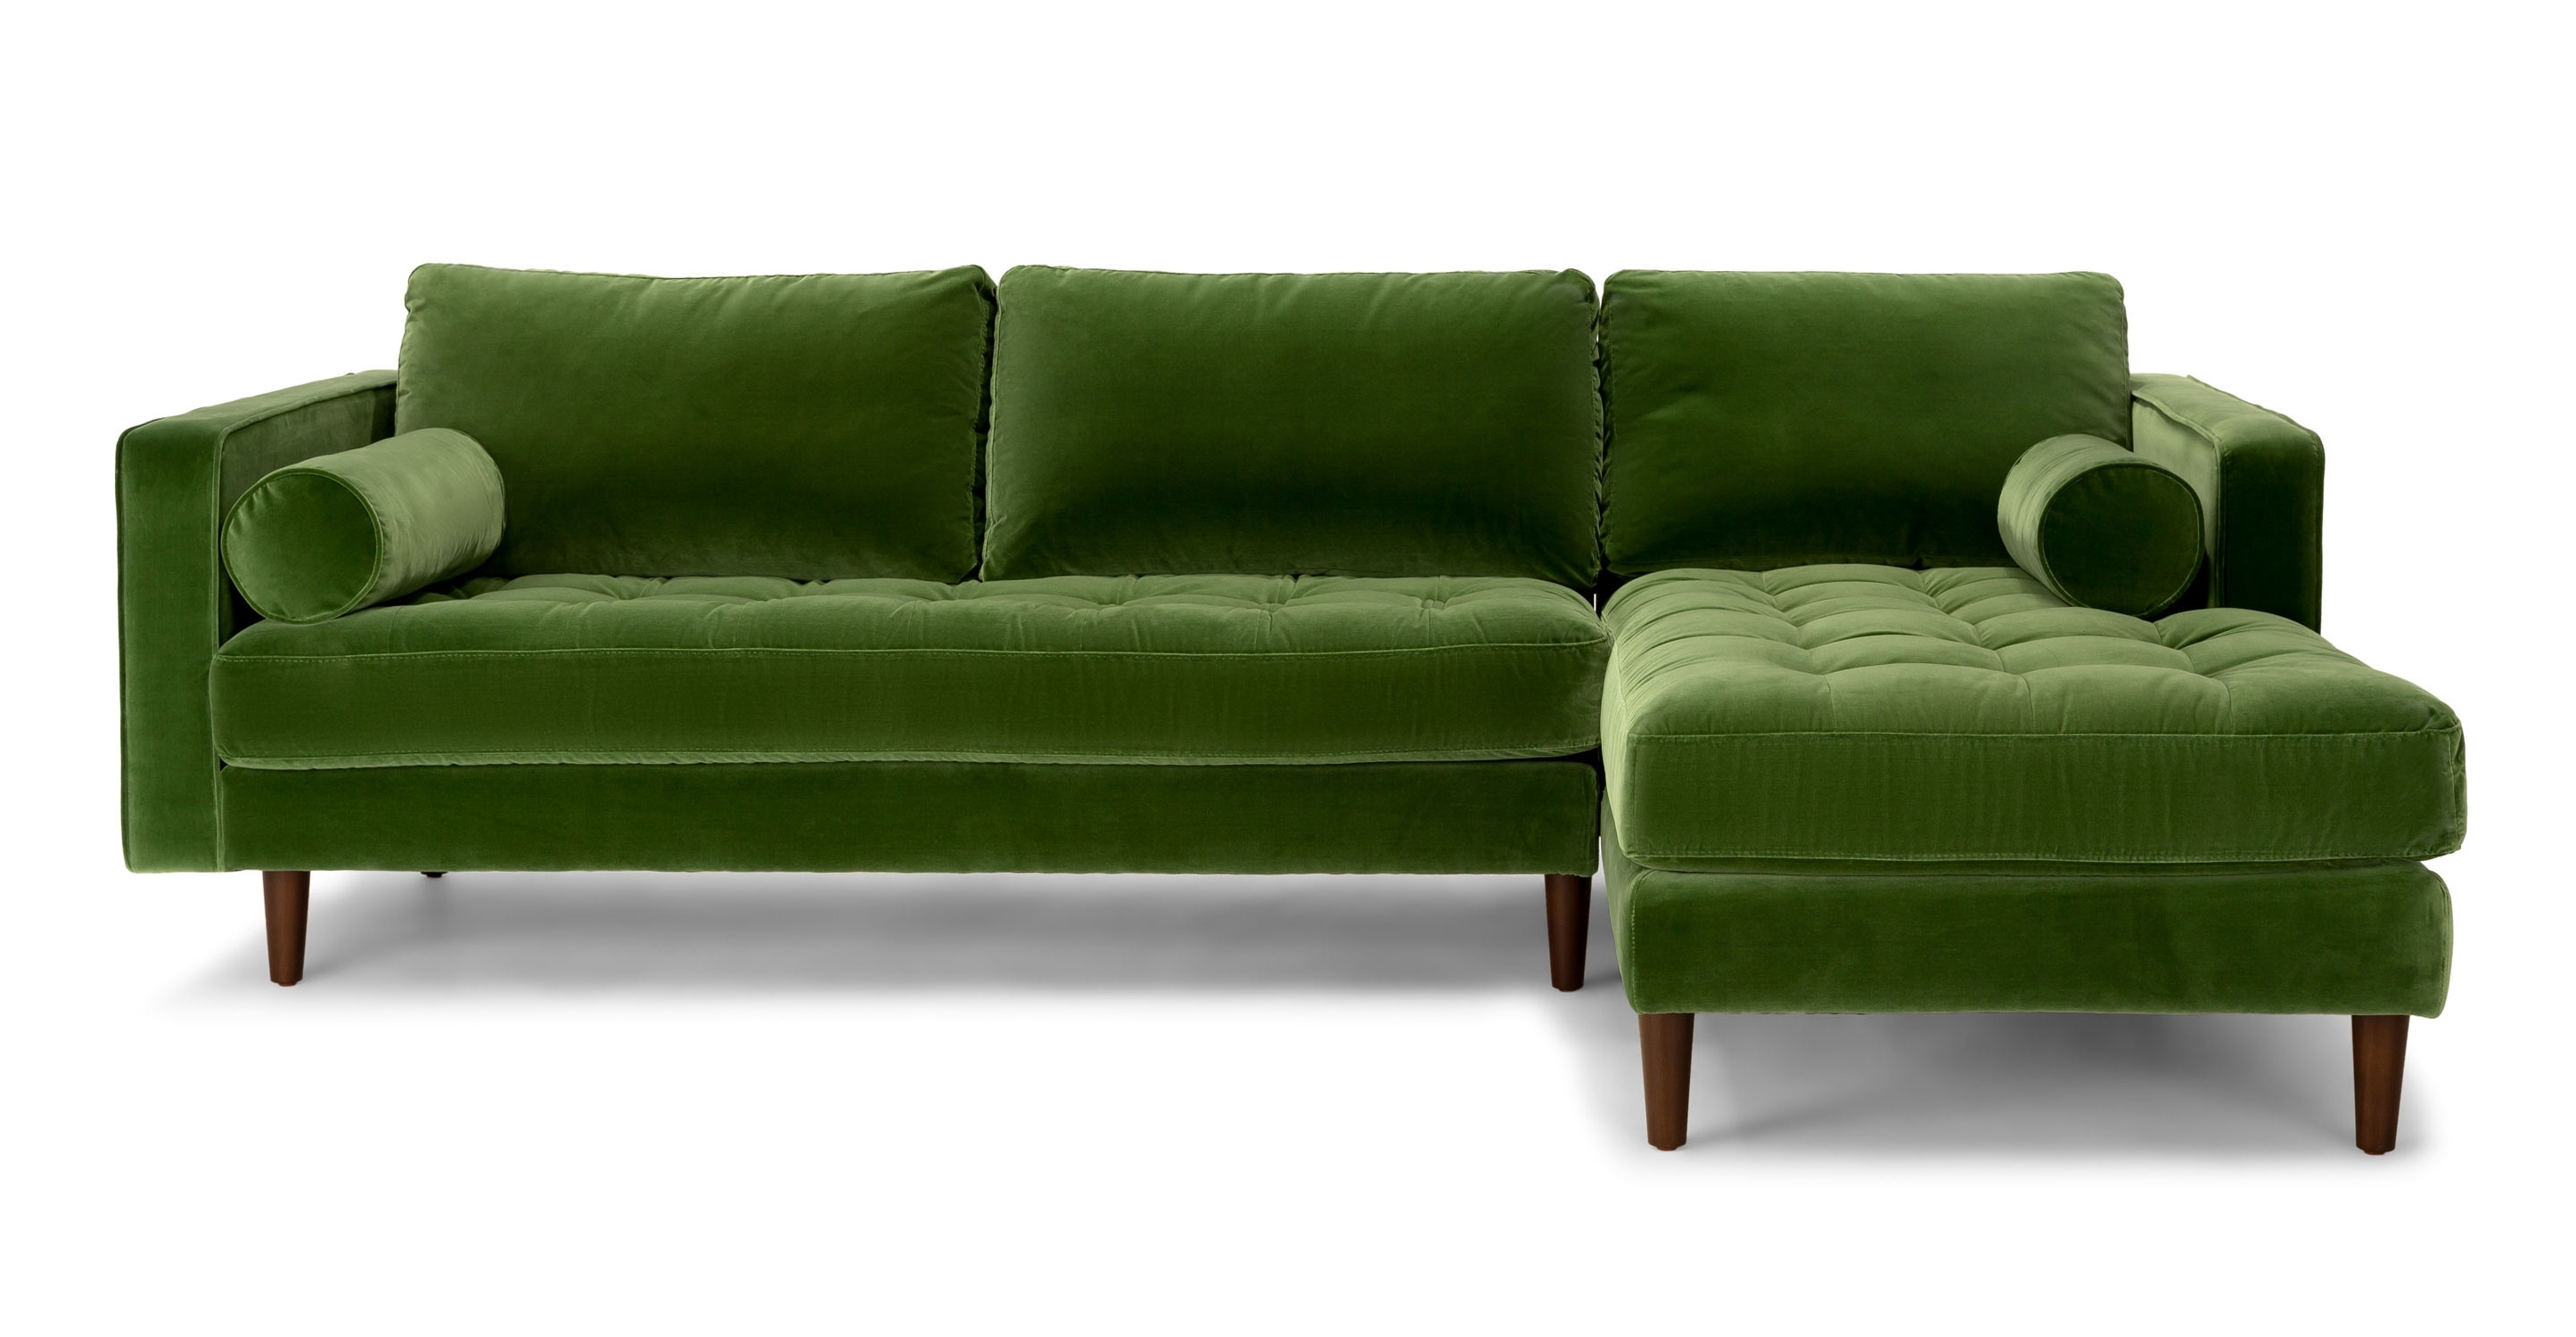 Green Sectional Sofas With Chaise Throughout Most Current Green Sectional Sofa With Chaise – Hotelsbacau (View 6 of 20)